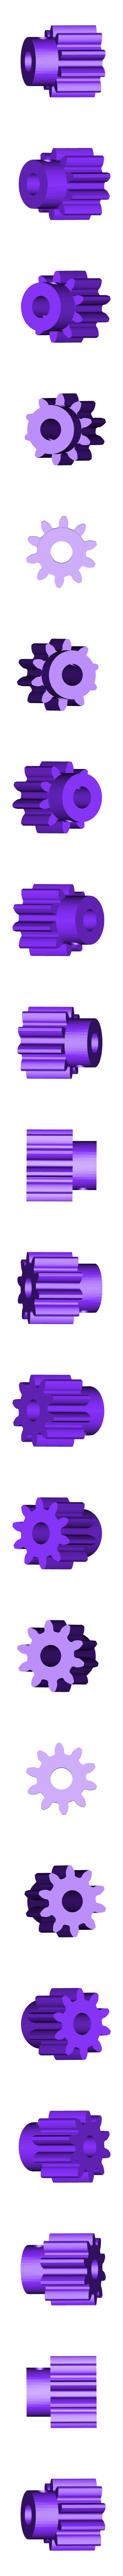 OpenRC_F1_250scaled_-_GearSmallT10-1.STL Download free STL file OpenRC F1 250% scaled • Template to 3D print, colorFabb